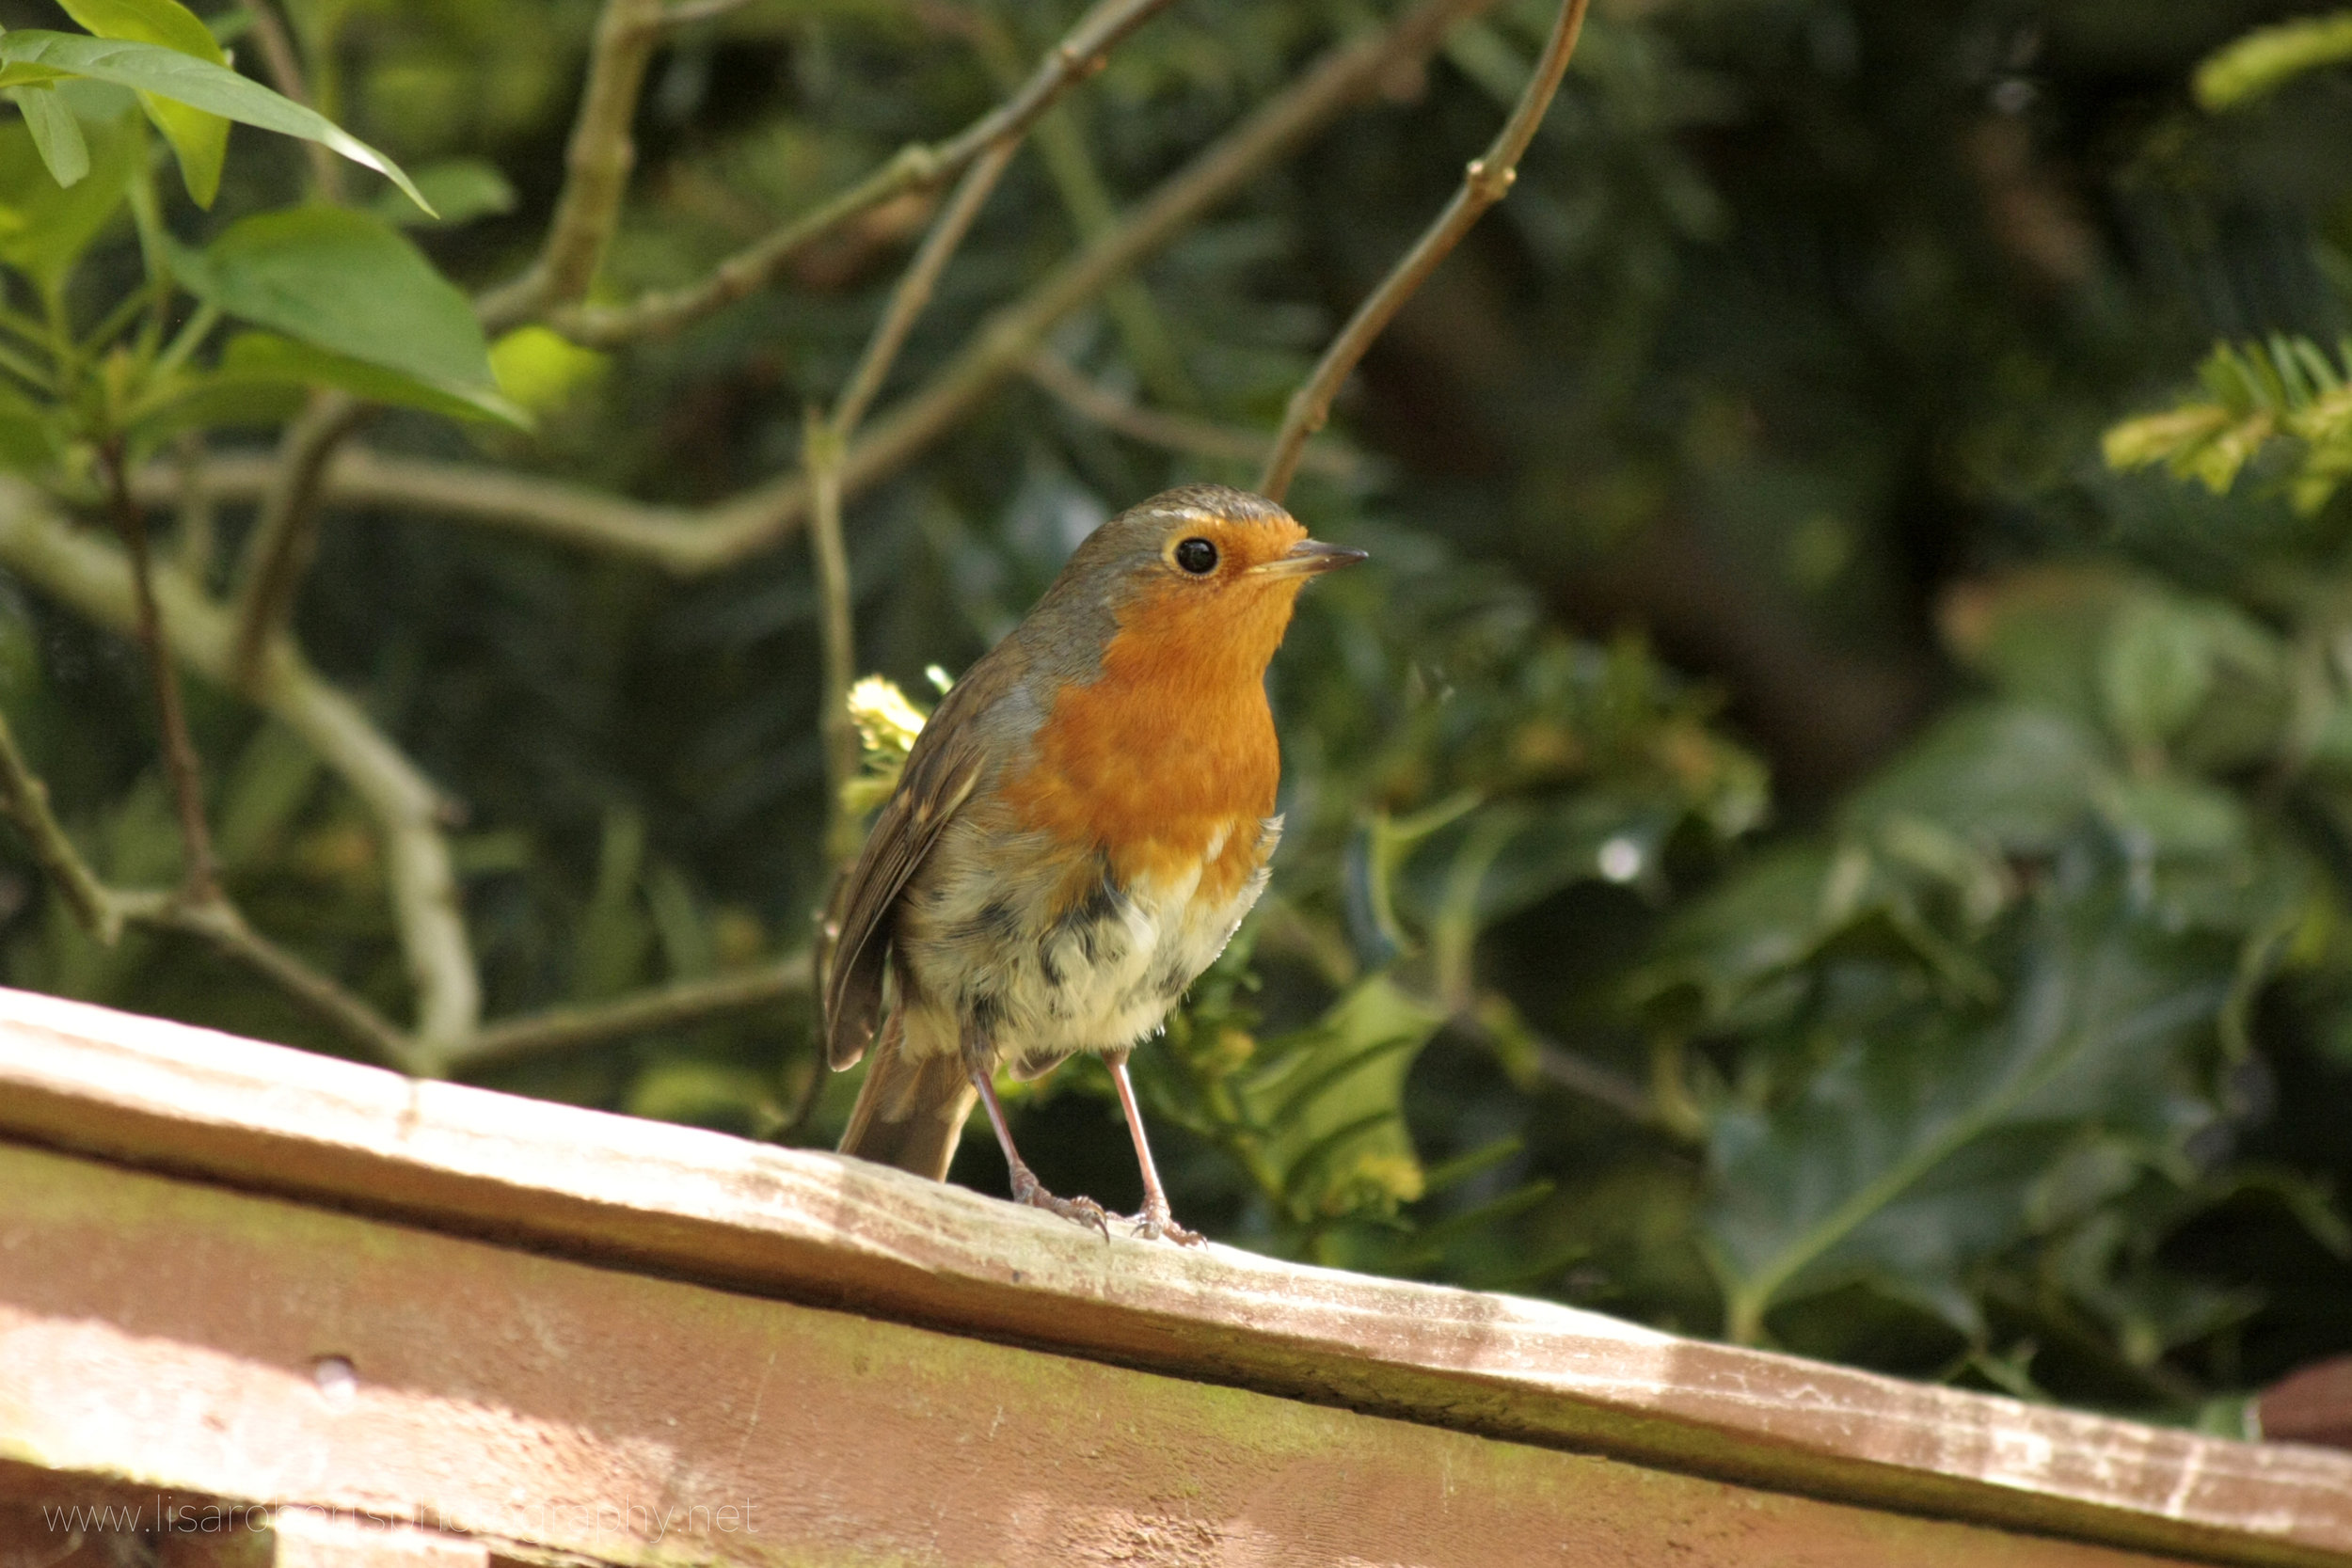 Male Robin on fence